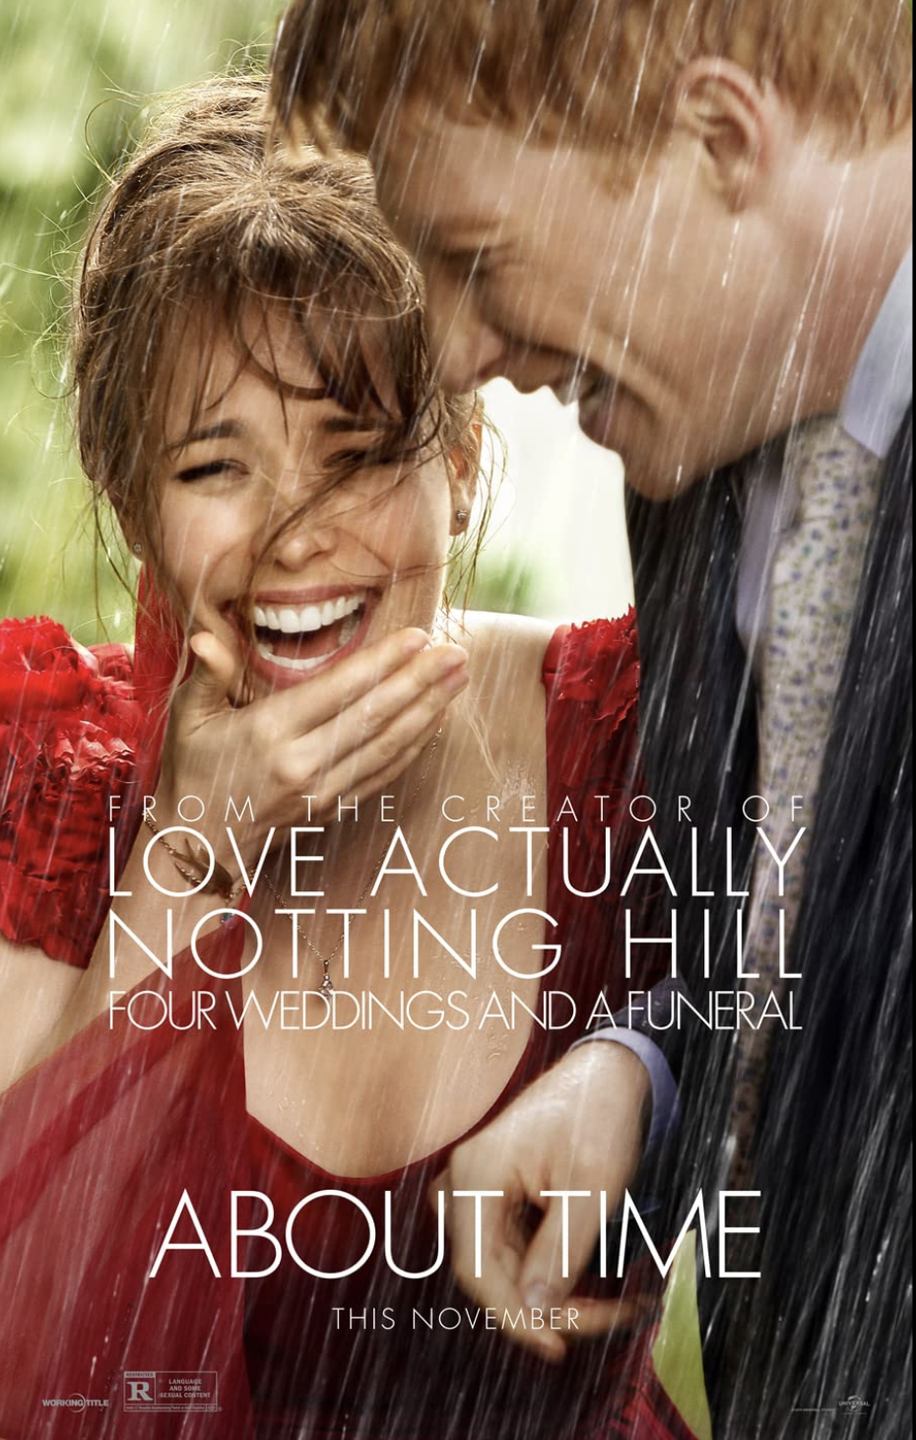 "<p>This movie will have you laughing hysterically one minute, then ugly-crying the next. When he turns 21, socially awkward Tim learns that he has the ability to rewind time. And with great power comes... the chance to date the girl of his dreams, no matter how many tries it takes to get right.</p><p><a href=""https://www.netflix.com/search?q=About%20Time&jbv=70261674"" rel=""nofollow noopener"" target=""_blank"" data-ylk=""slk:STREAM NOW"" class=""link rapid-noclick-resp"">STREAM NOW</a></p>"